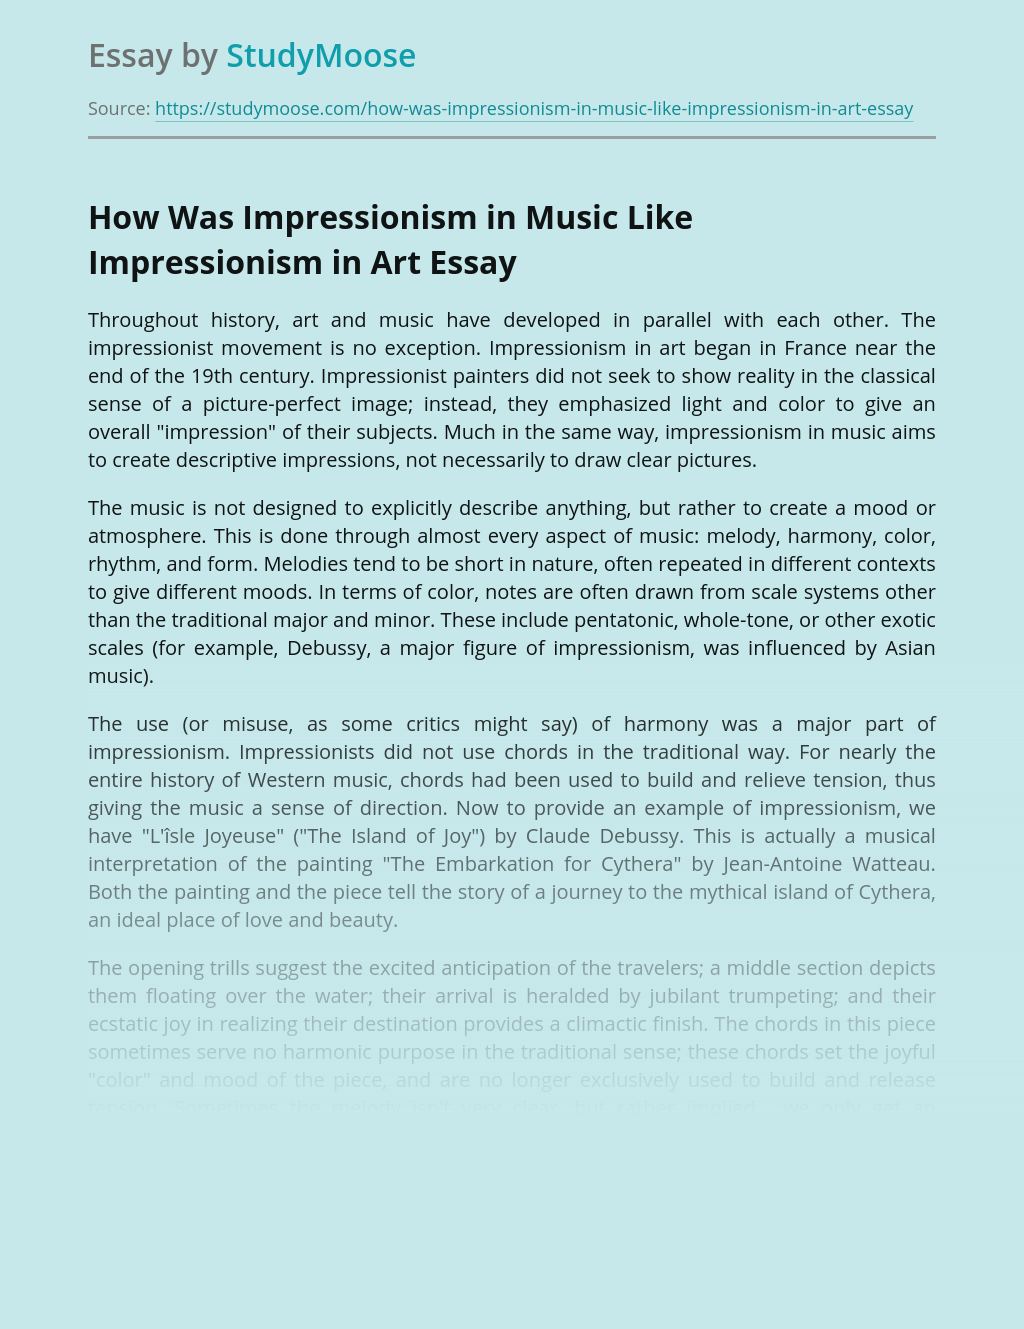 How Was Impressionism in Music Like Impressionism in Art